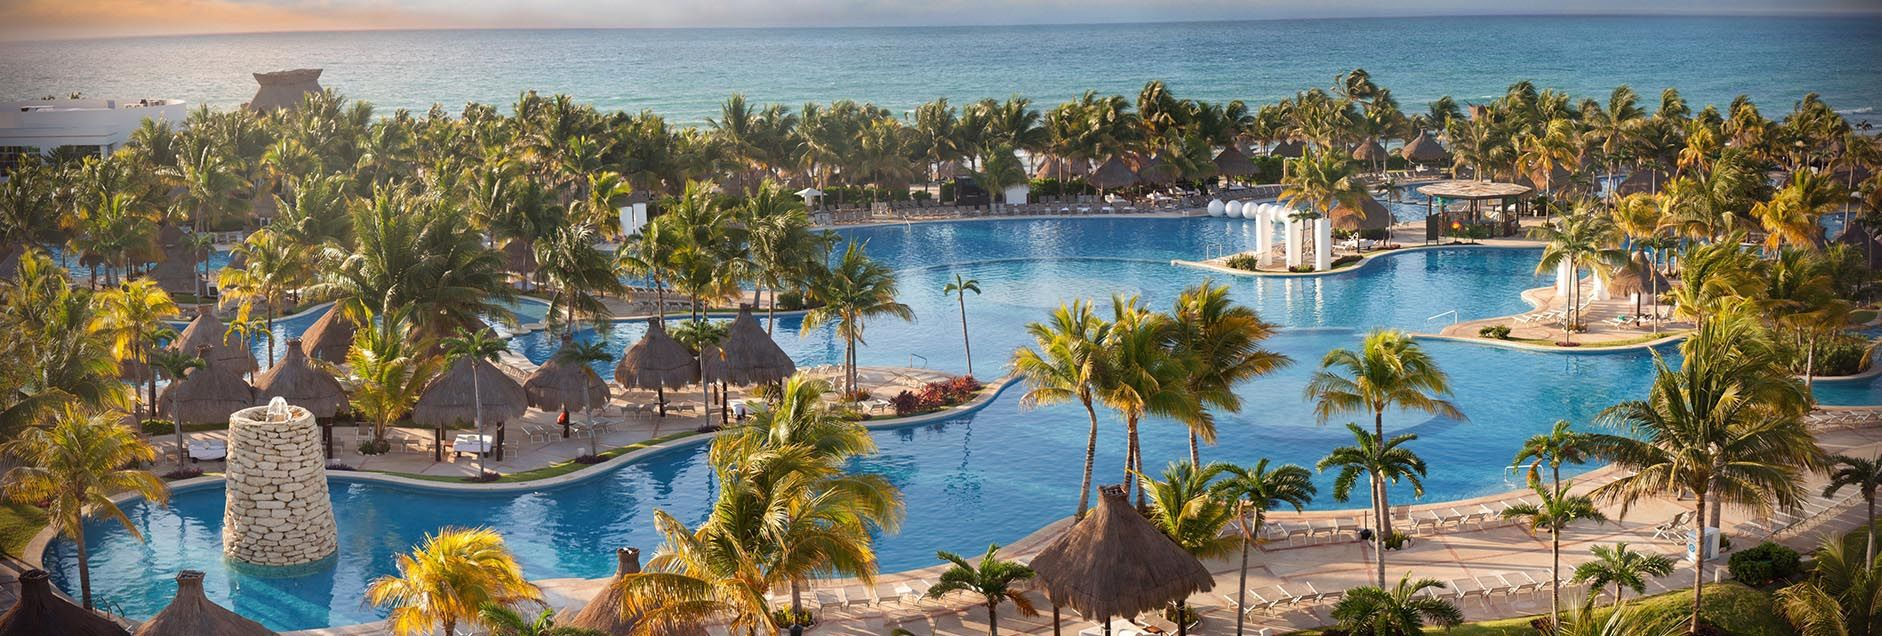 Grand Mayan Resort - Riviera Maya, Mexico has one of the largest swimming pools in Latin America